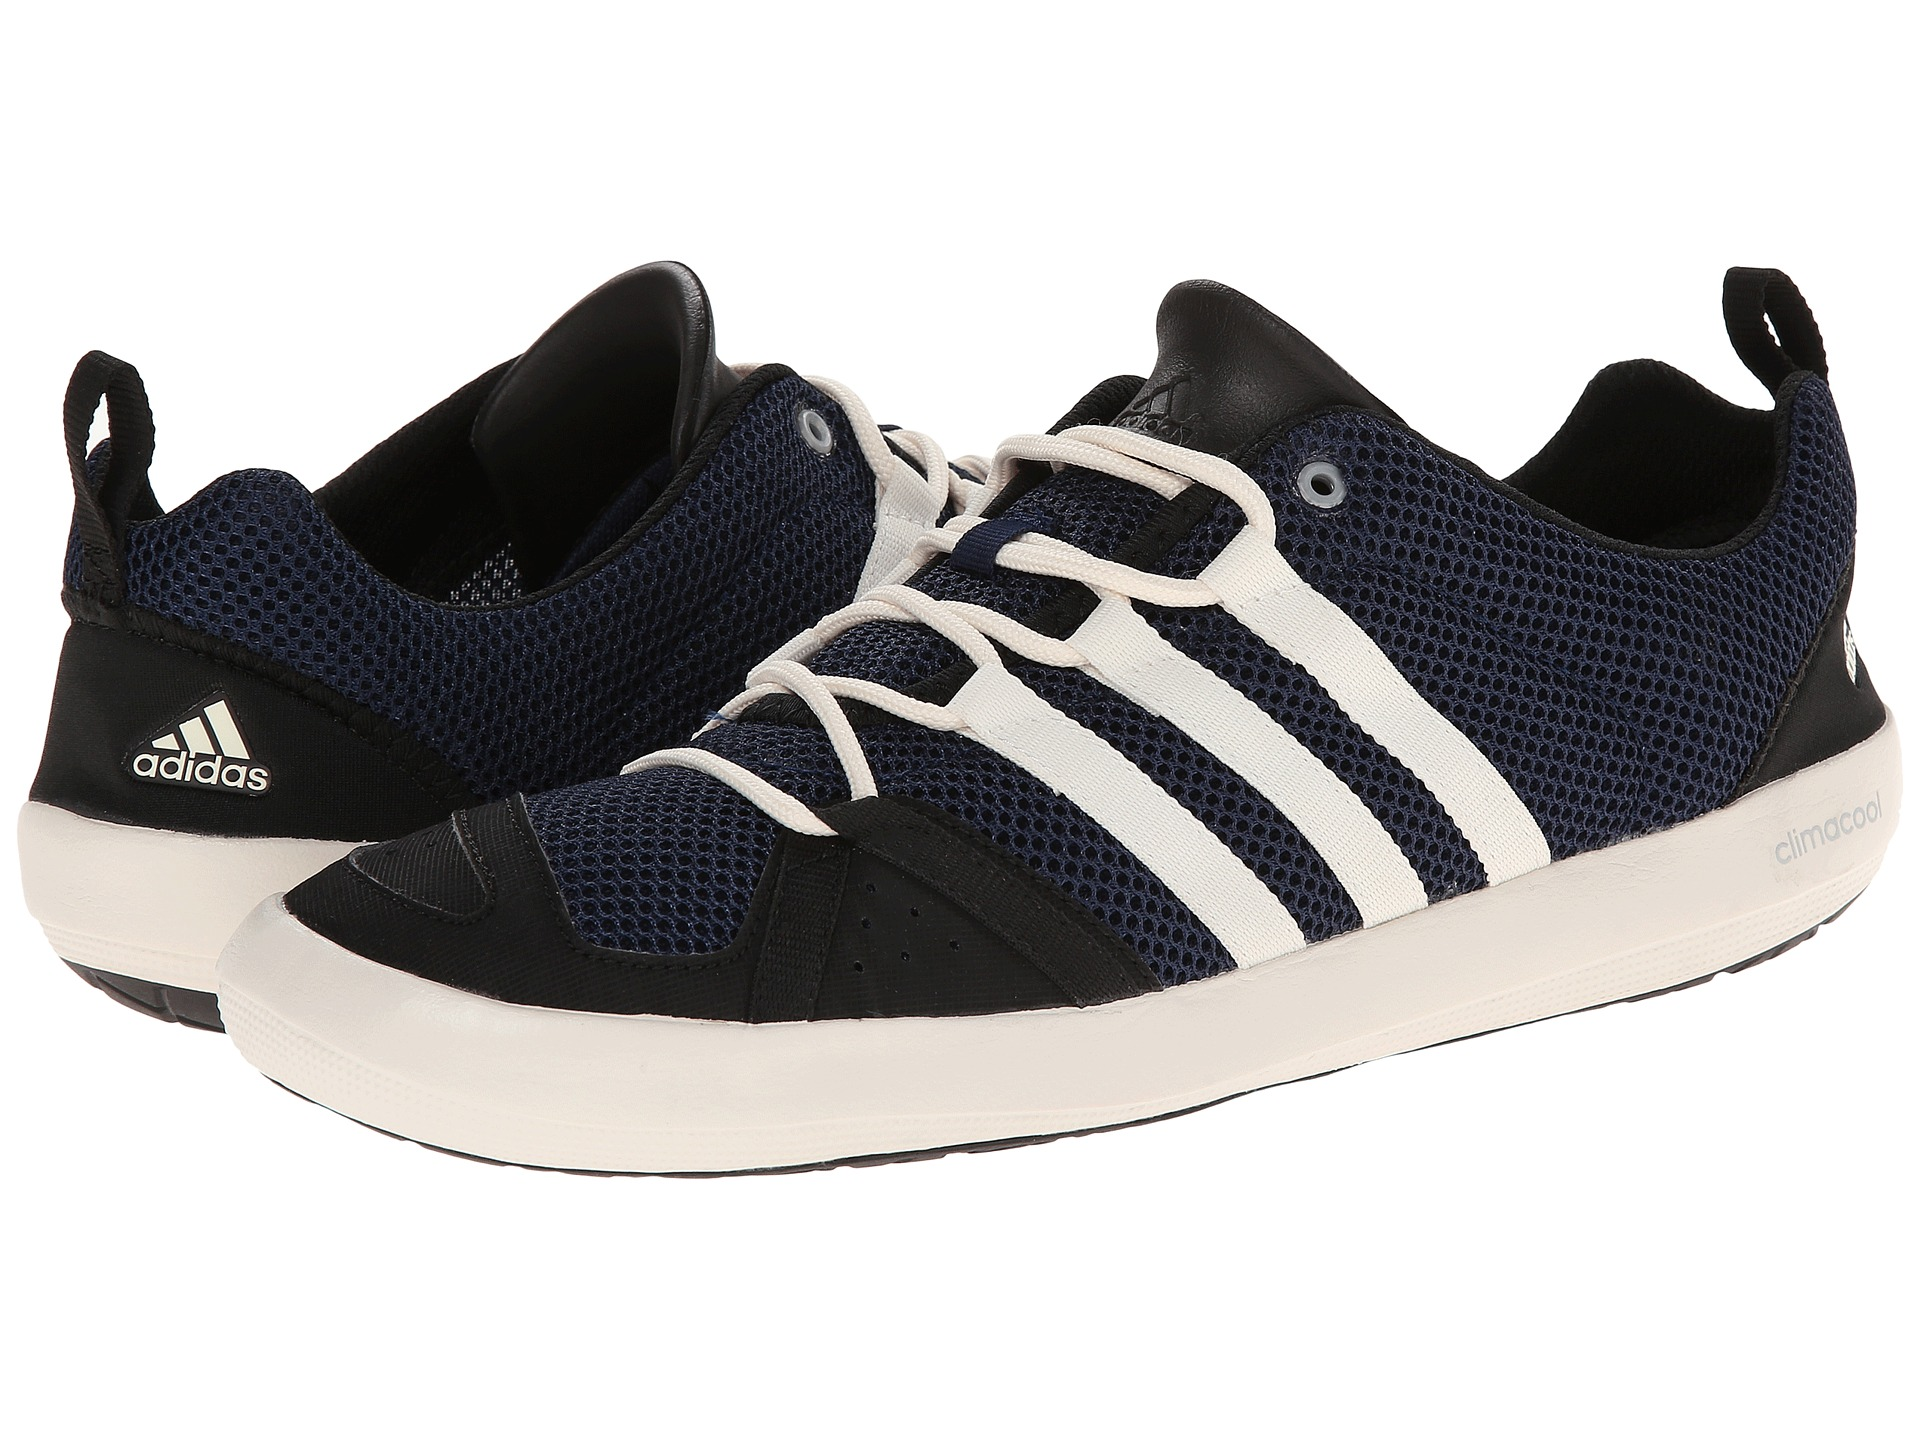 adidas outdoor climacool boat lace col navy chalk white. Black Bedroom Furniture Sets. Home Design Ideas